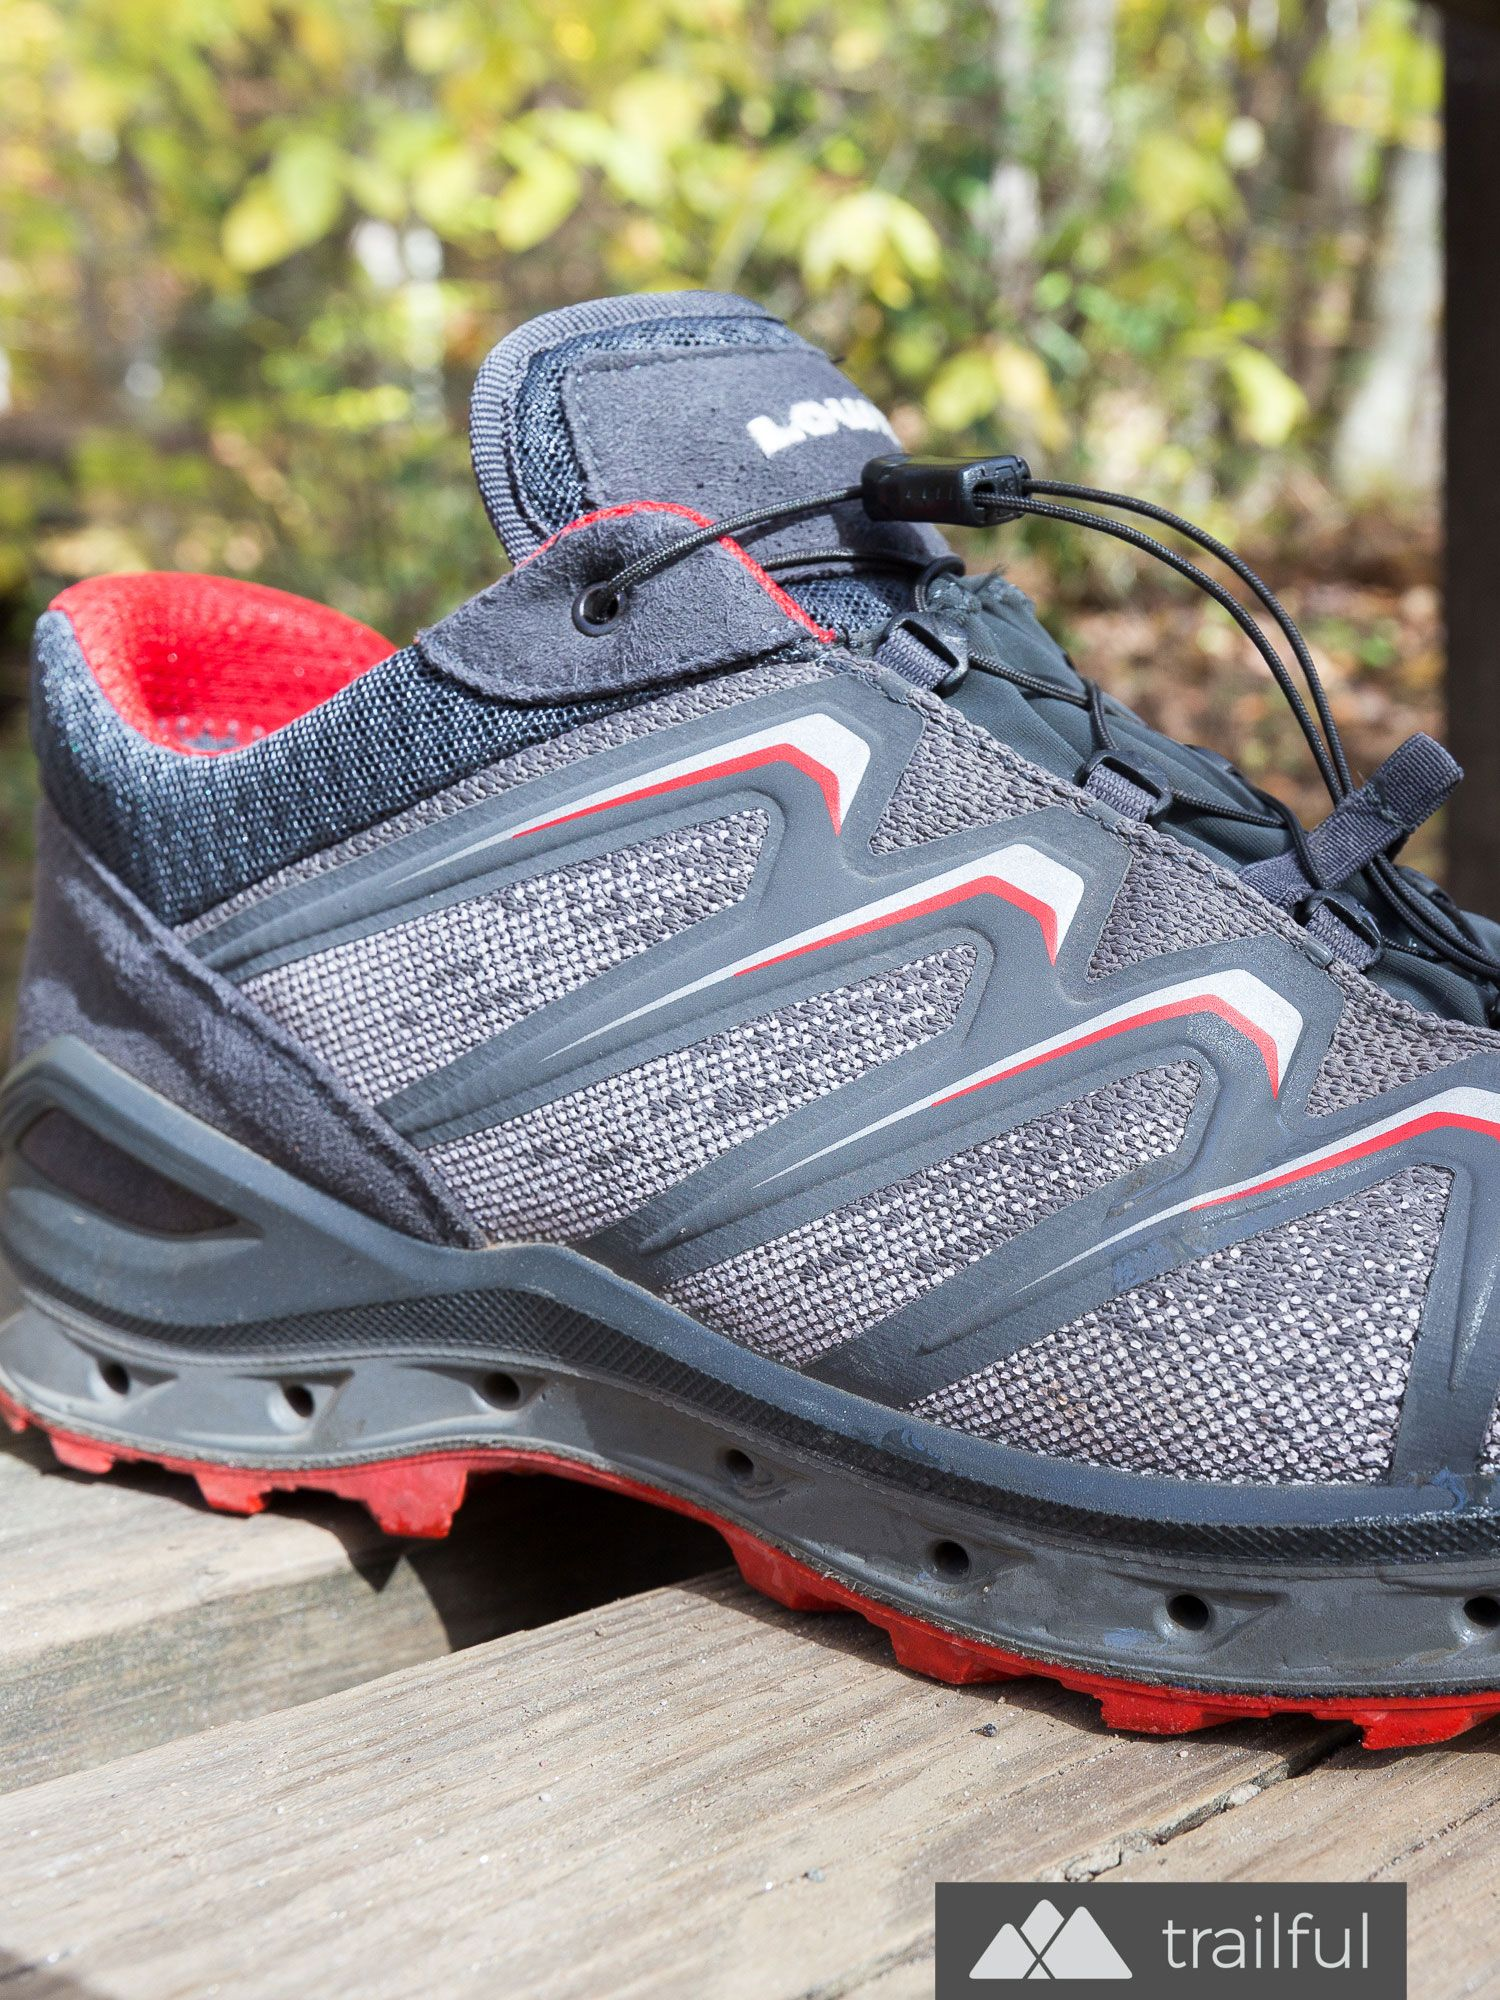 7d64ddd56ce Our favorite hiking boots: our trail-tested LOWA Aerox GTX Lo Surround  review